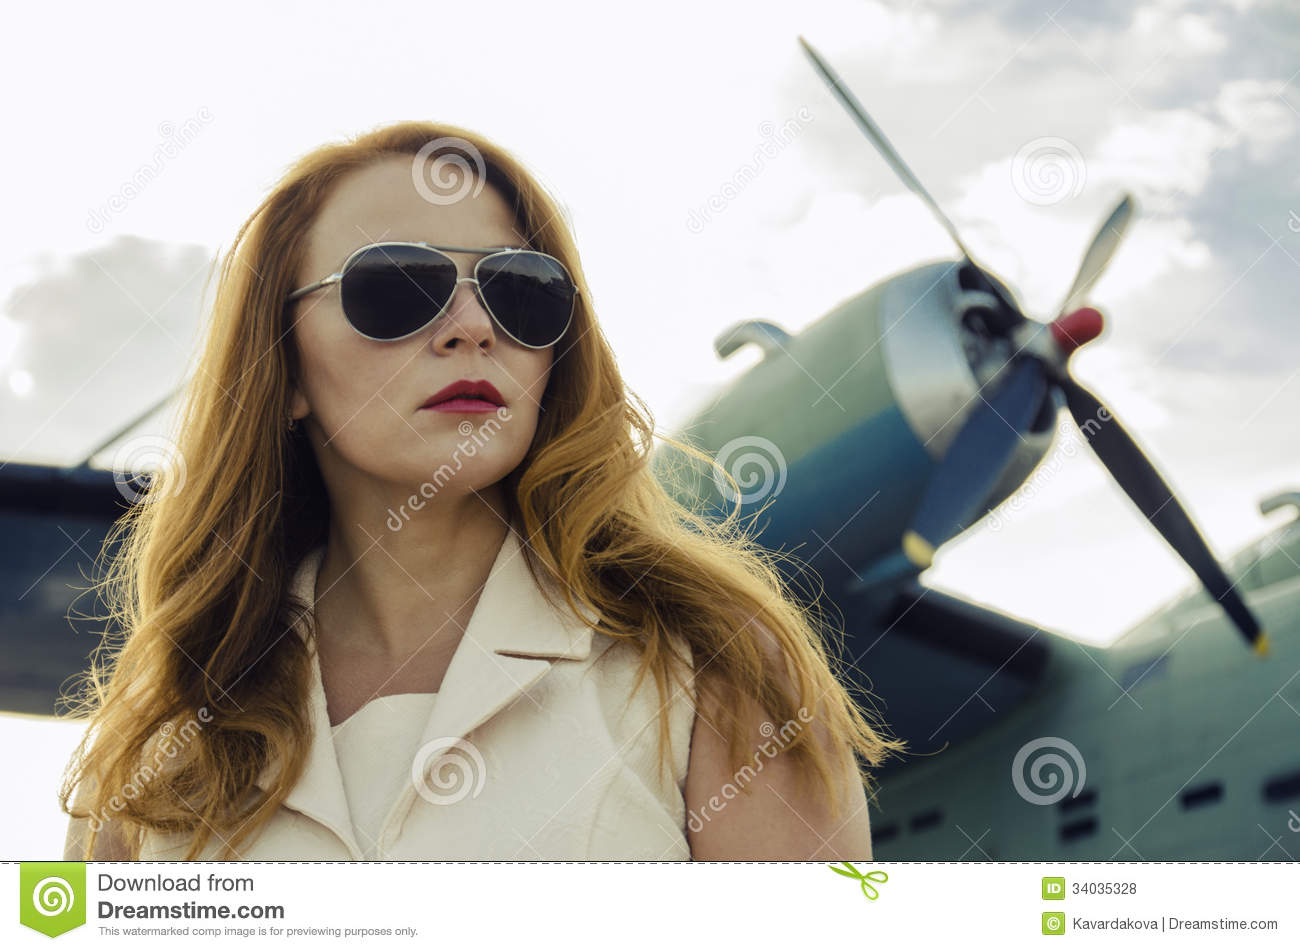 Download Attractive Woman In Sunglasses Outside Near Military Plane Stock Photo - Image of female, stewardess: 34035328